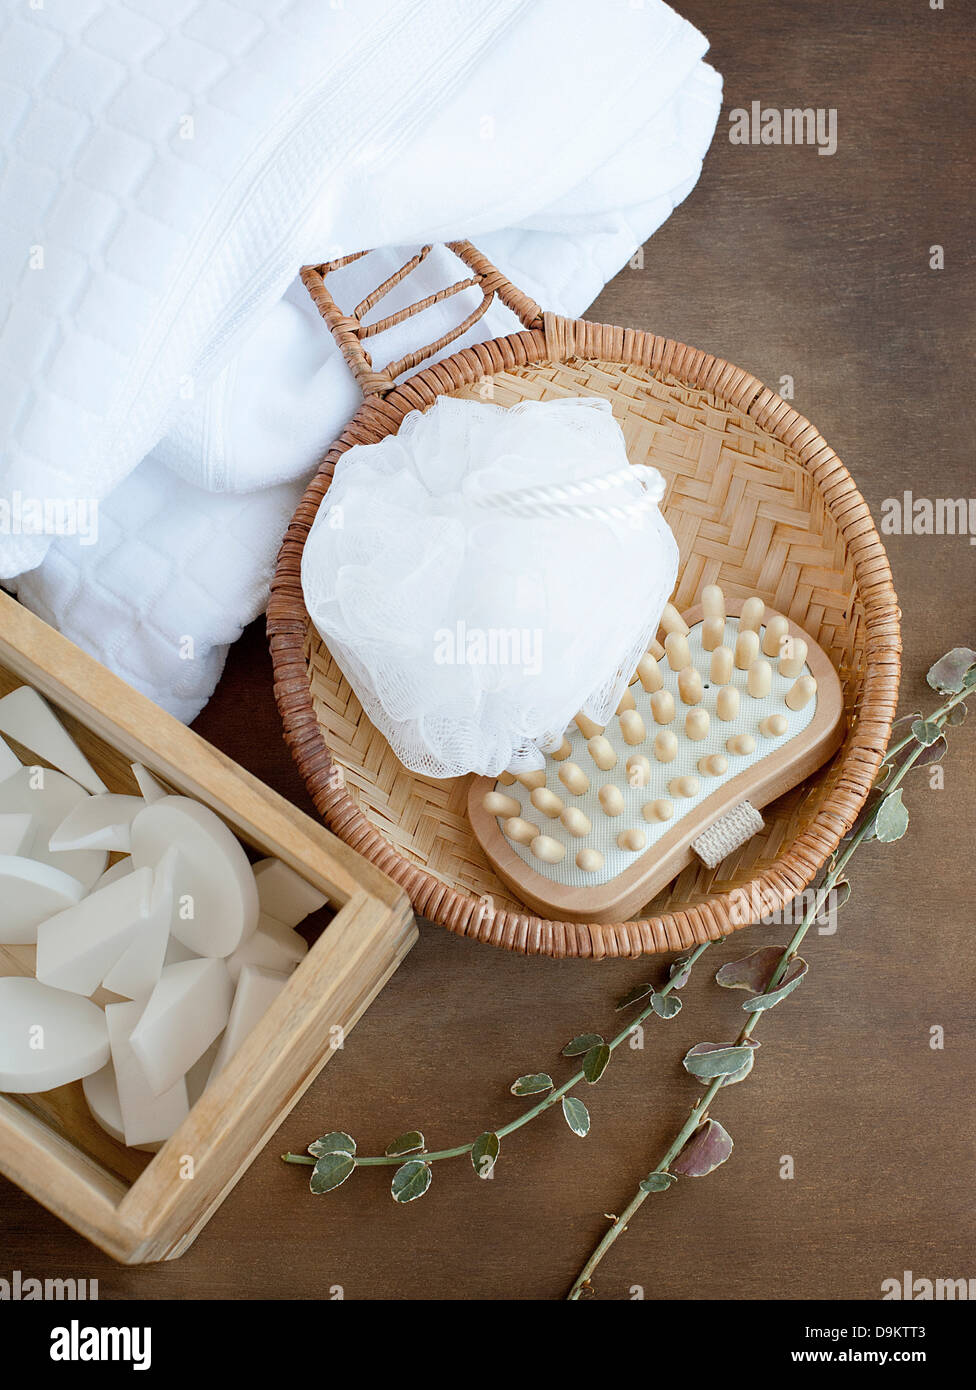 Bathtime beauty products and toiletries, overhead view - Stock Image